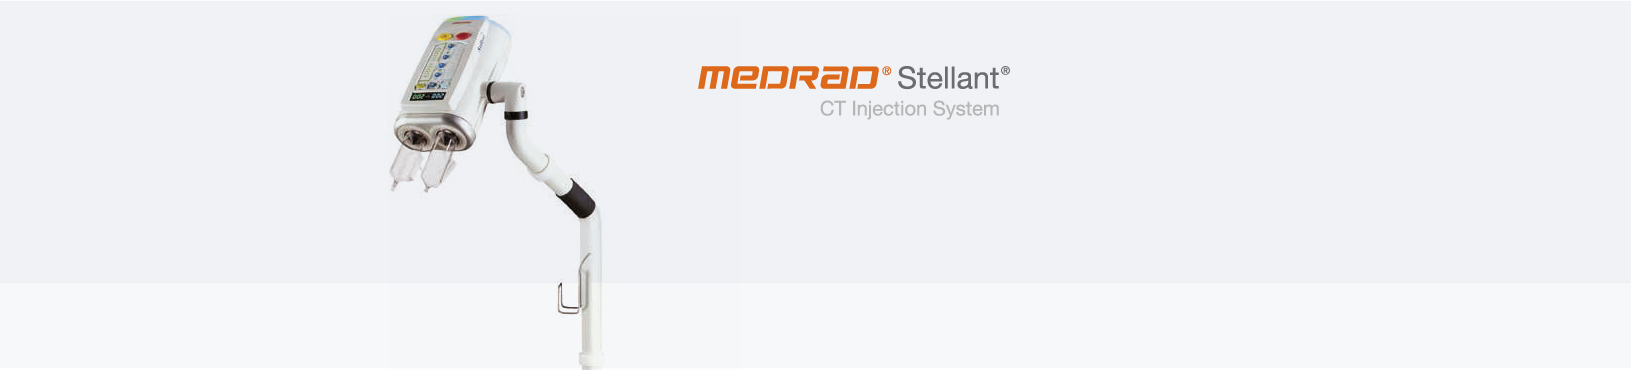 MEDRAD® Stellant® CT